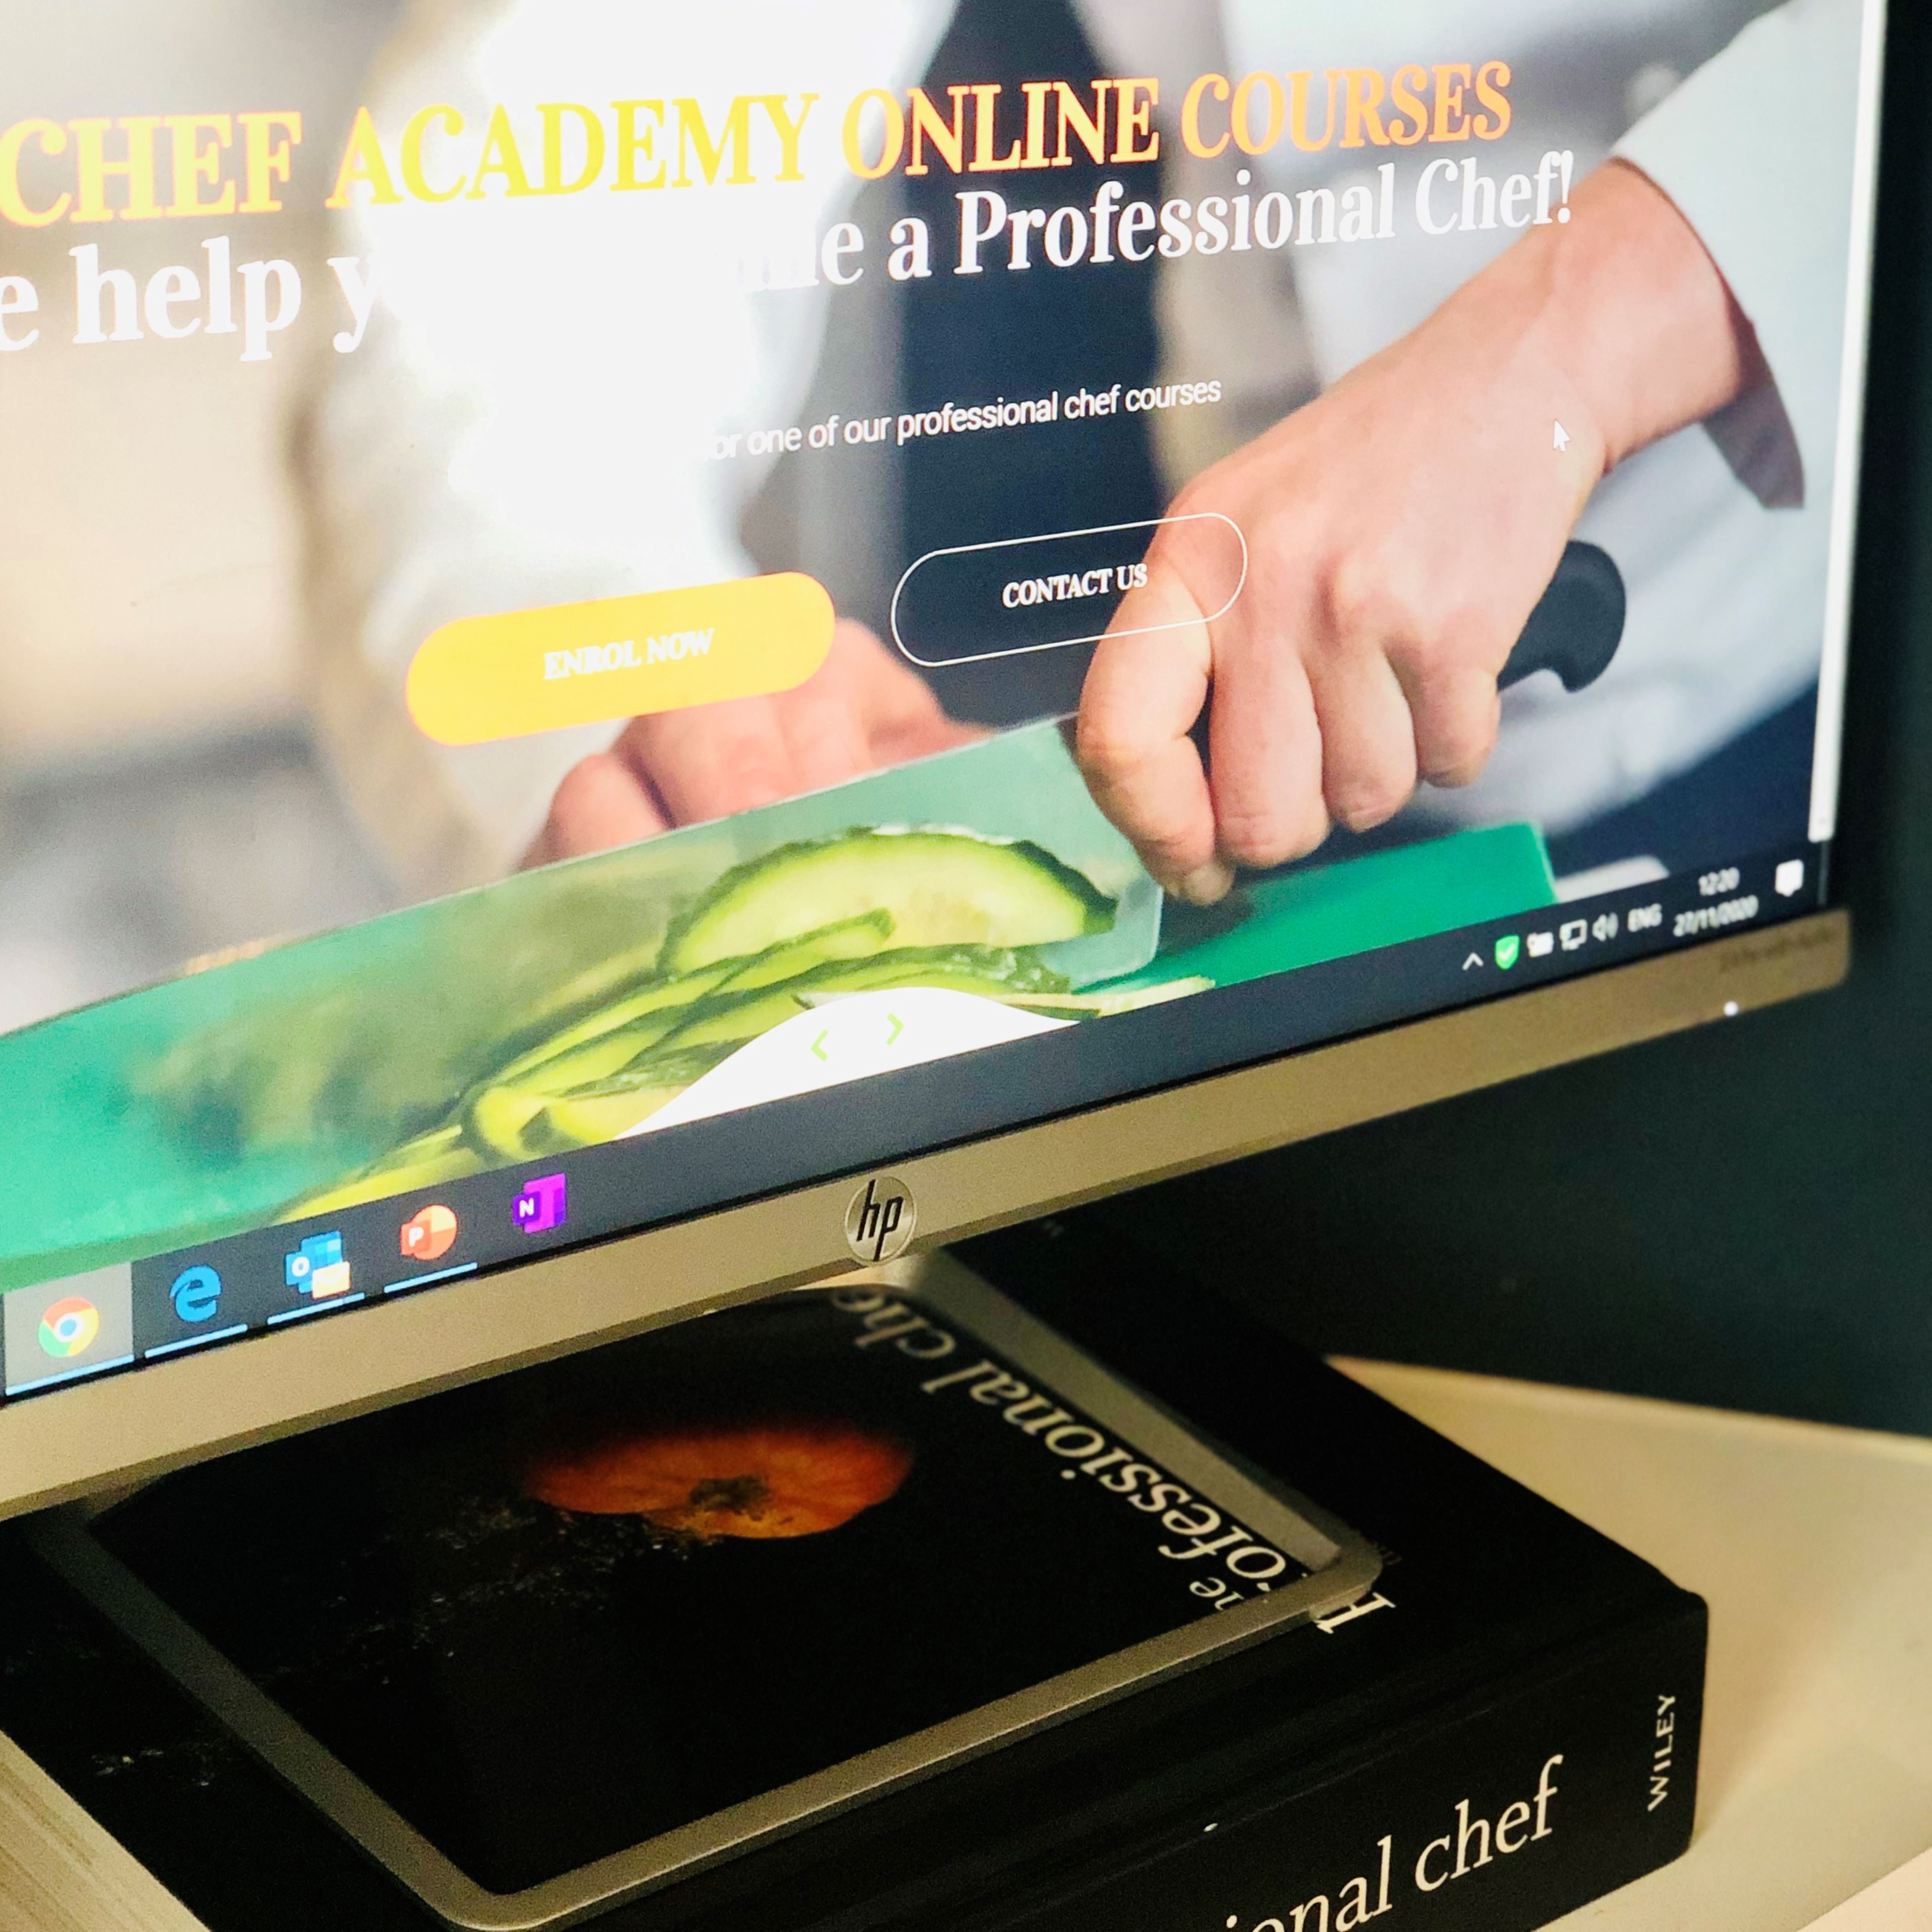 Importance of online chef courses and training